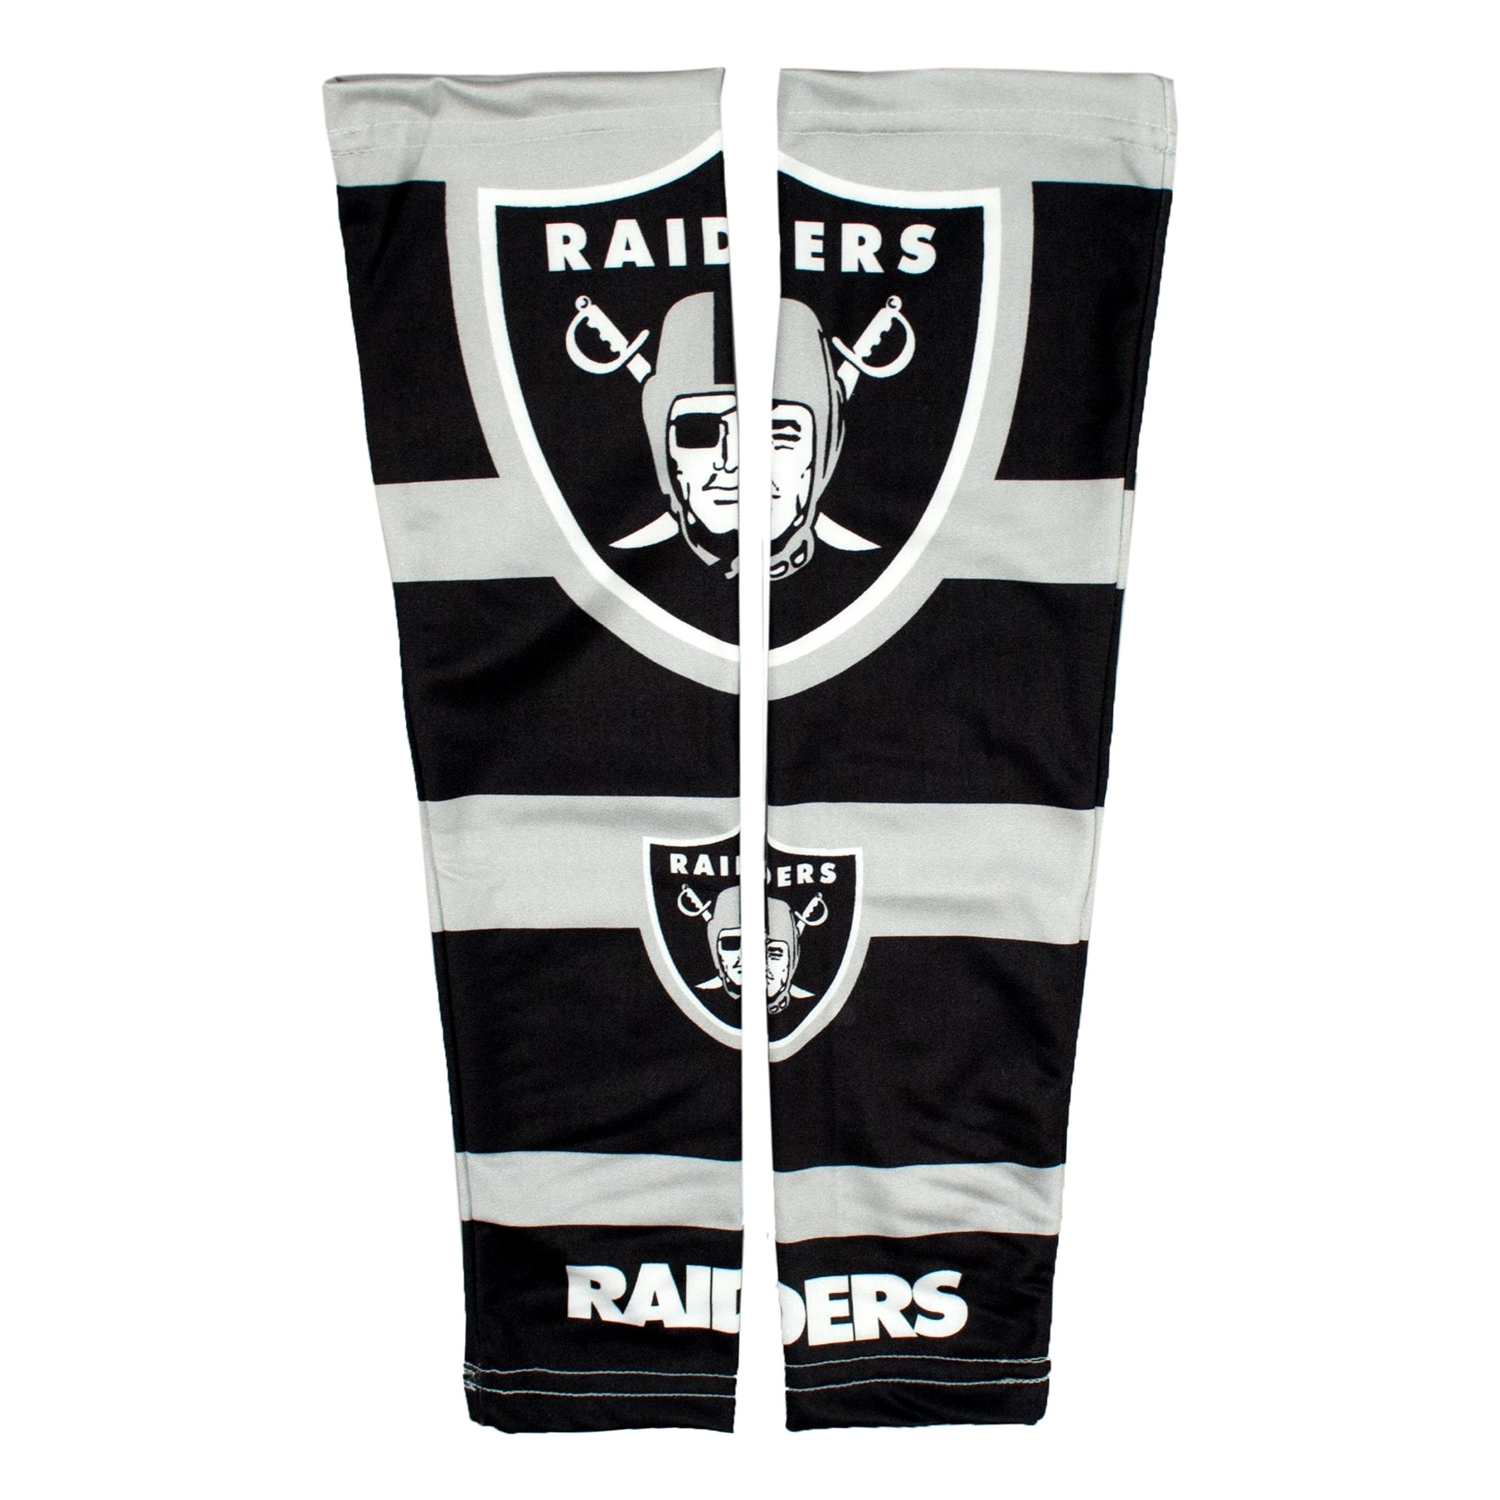 Football Nfl Football Oakland Raiders Strong Arm Sleeves - 300612-raid - Oakland Raiders Strong Arm 300612-RAID